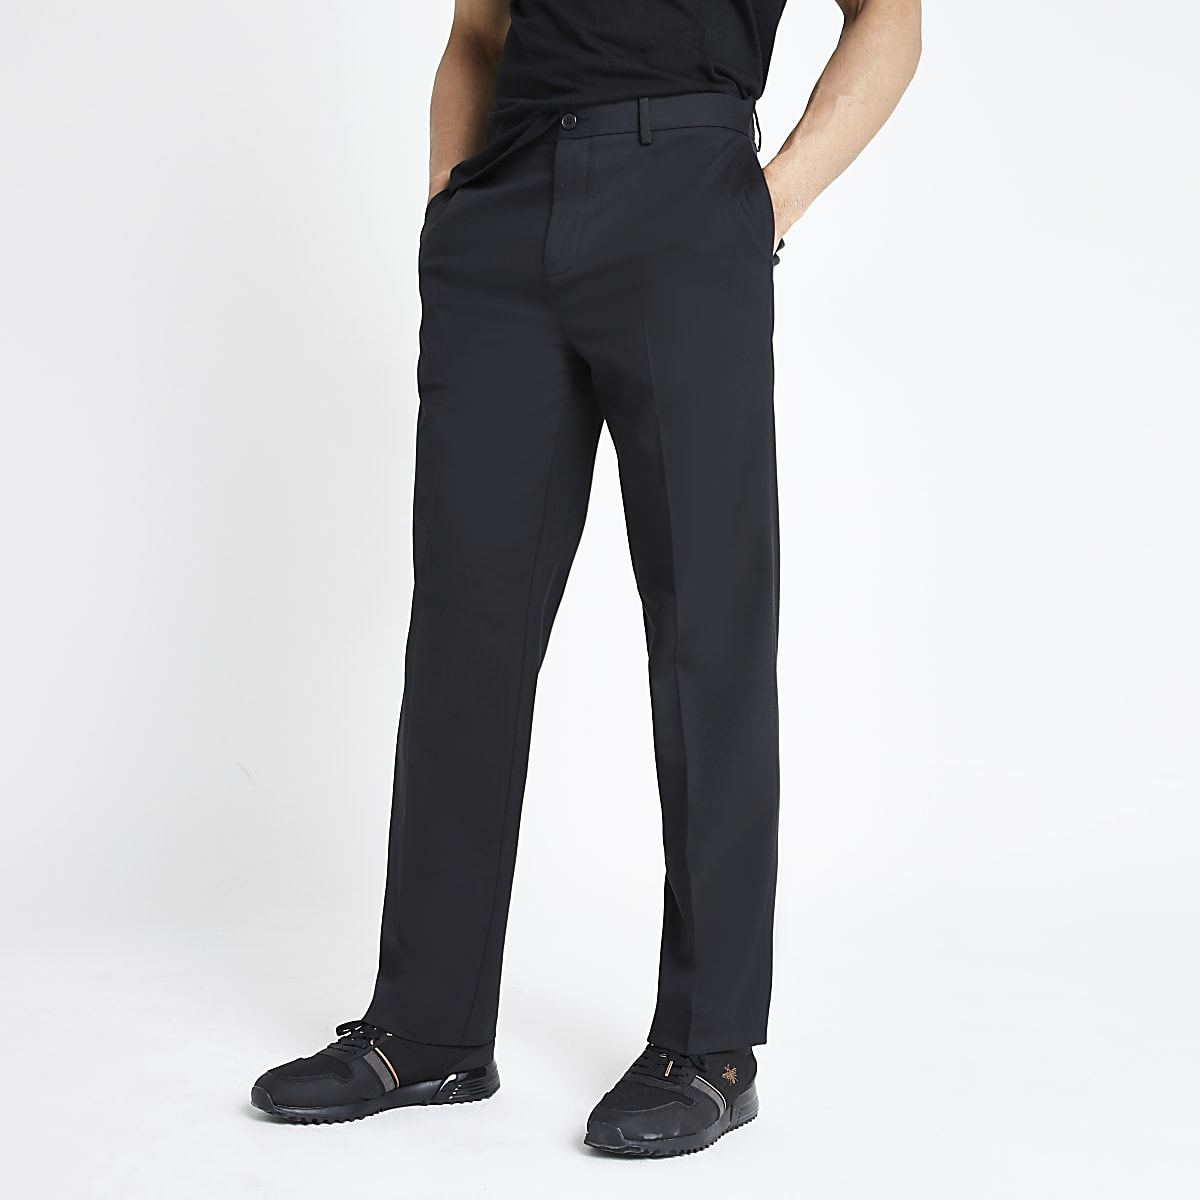 Black relaxed fit wide leg pants